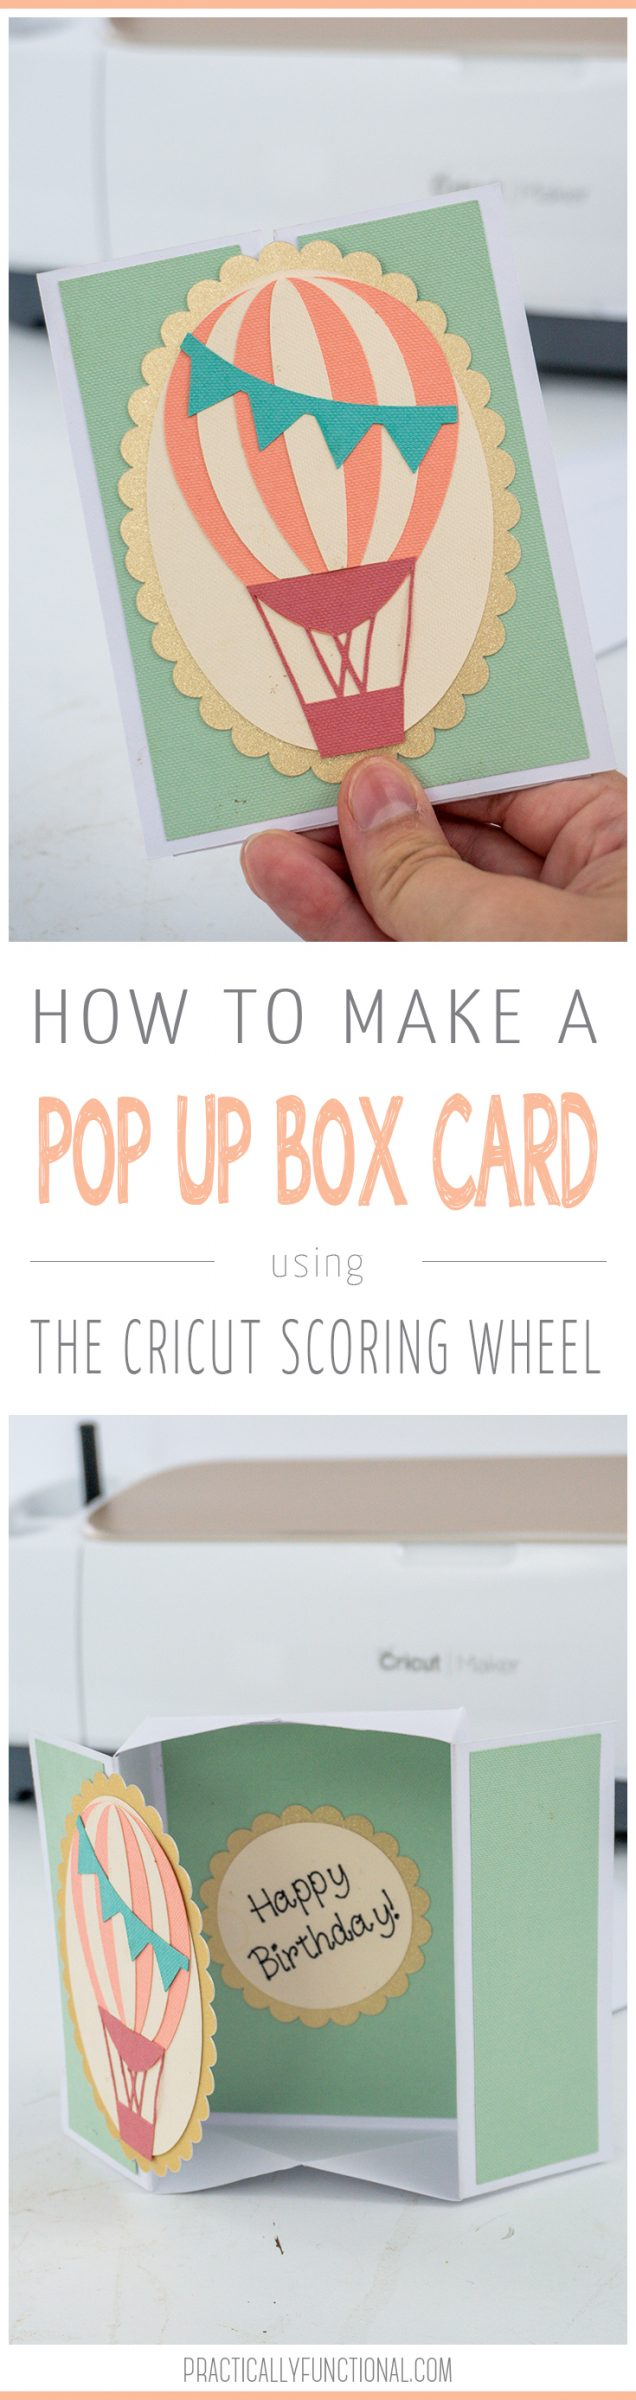 Learn how to make a 3d pop up box card with the Cricut scoring wheel! This cute card folds flat to fit in a standard envelope and takes less than a half hour to complete - you'll love it! #cricutmade #cricutcraft #cricutscoringwheel